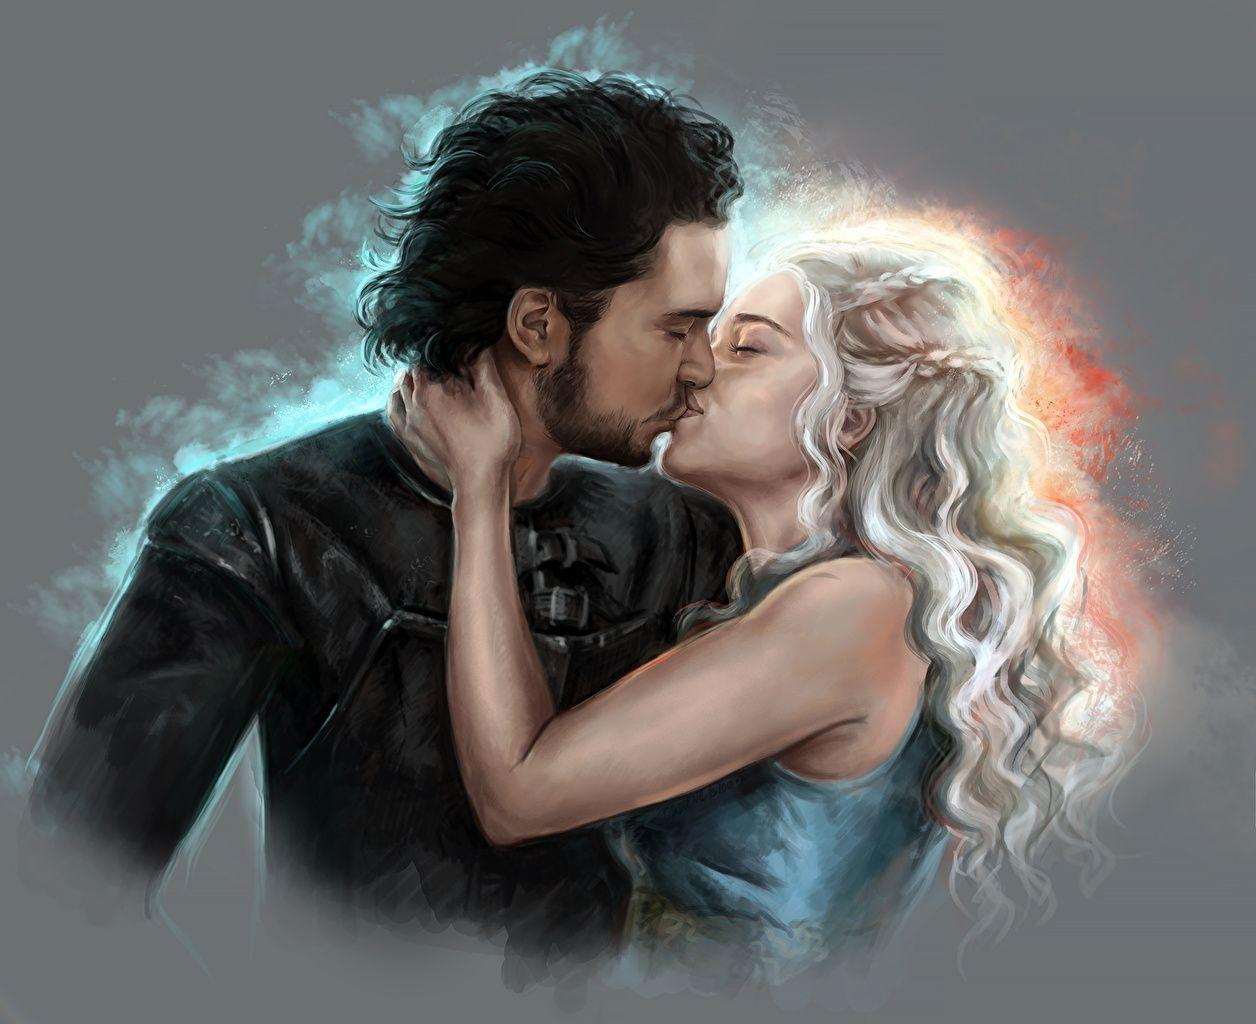 Wallpaper Game Of Thrones Daenerys Targaryen Emilia Clarke Jon Snow